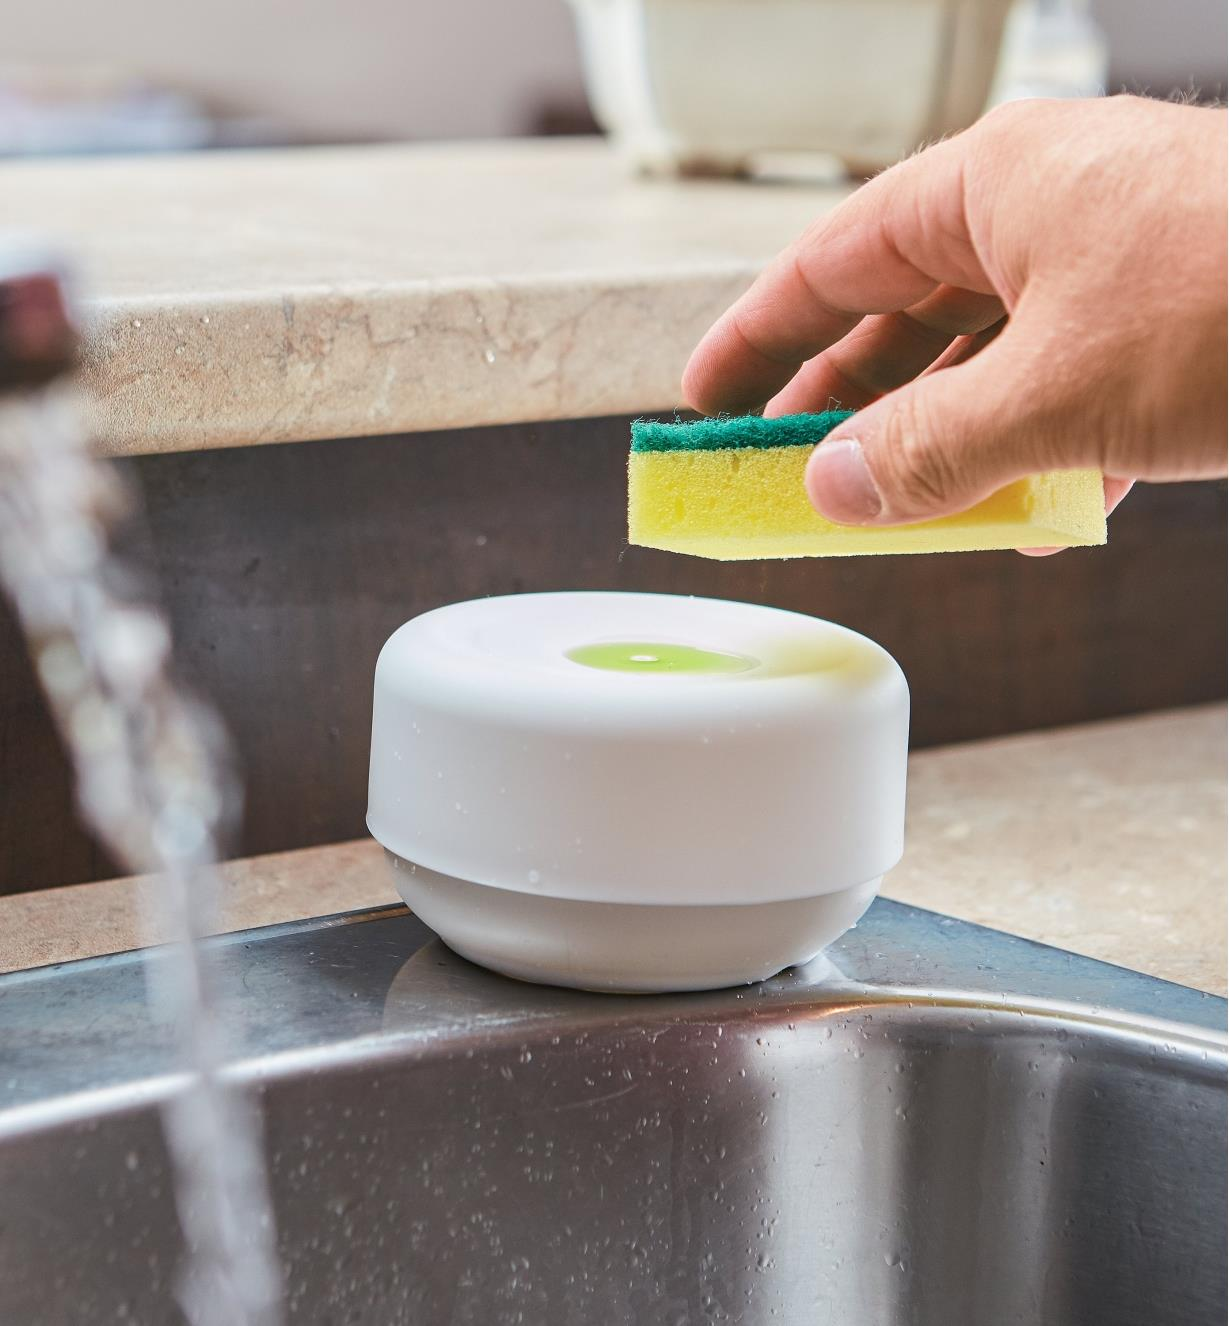 Using a sponge to gather soap from the well on the top of the dispenser